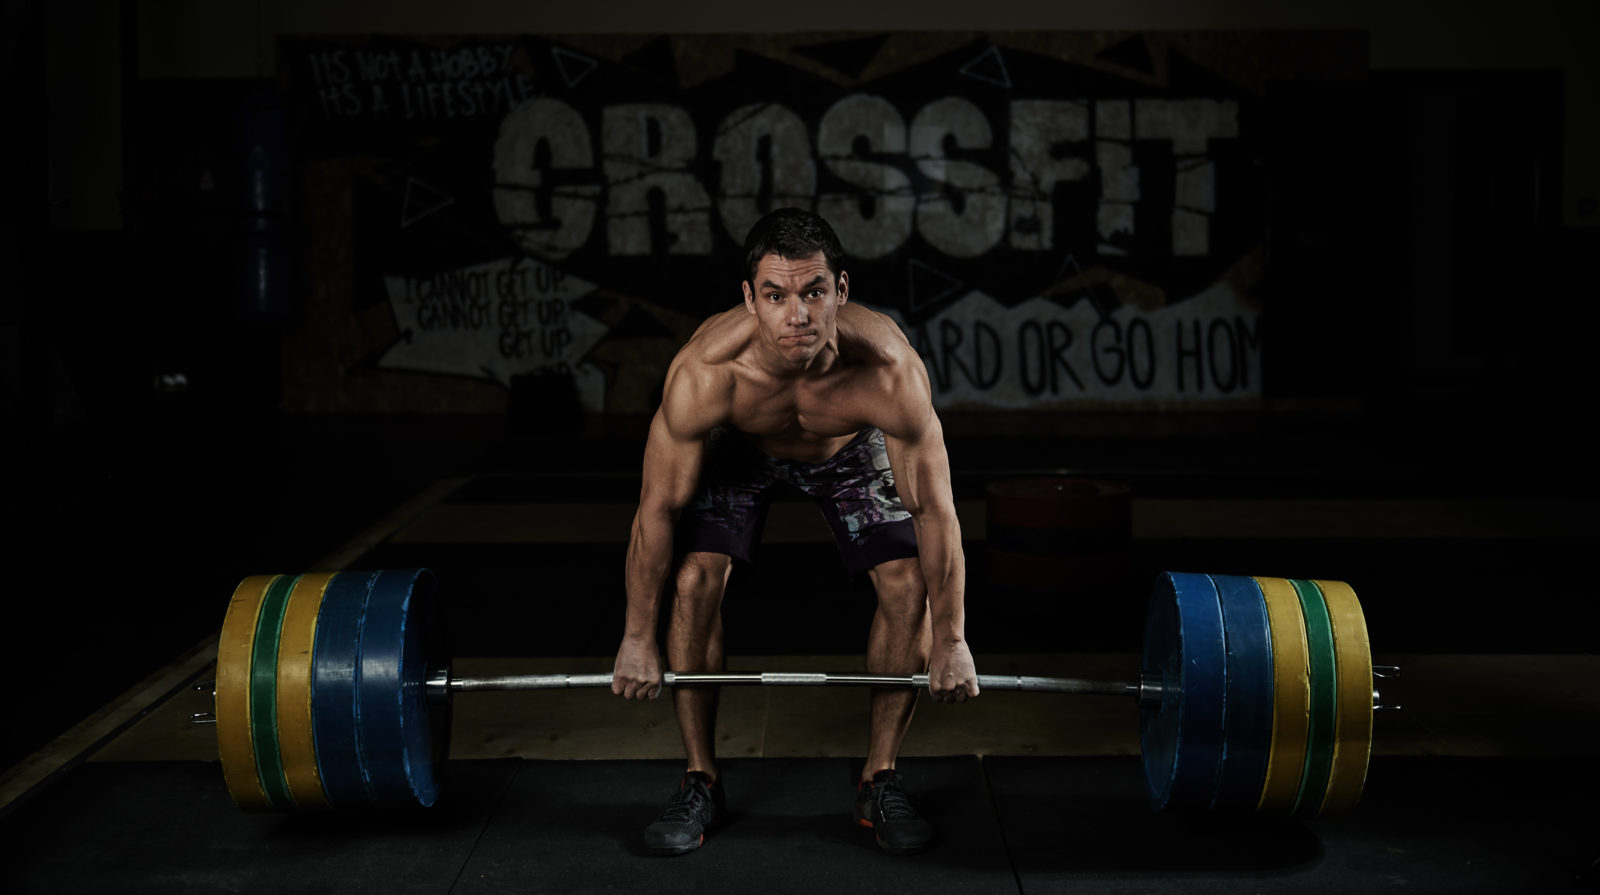 the crossfit games fittest alive or just best at crossfit